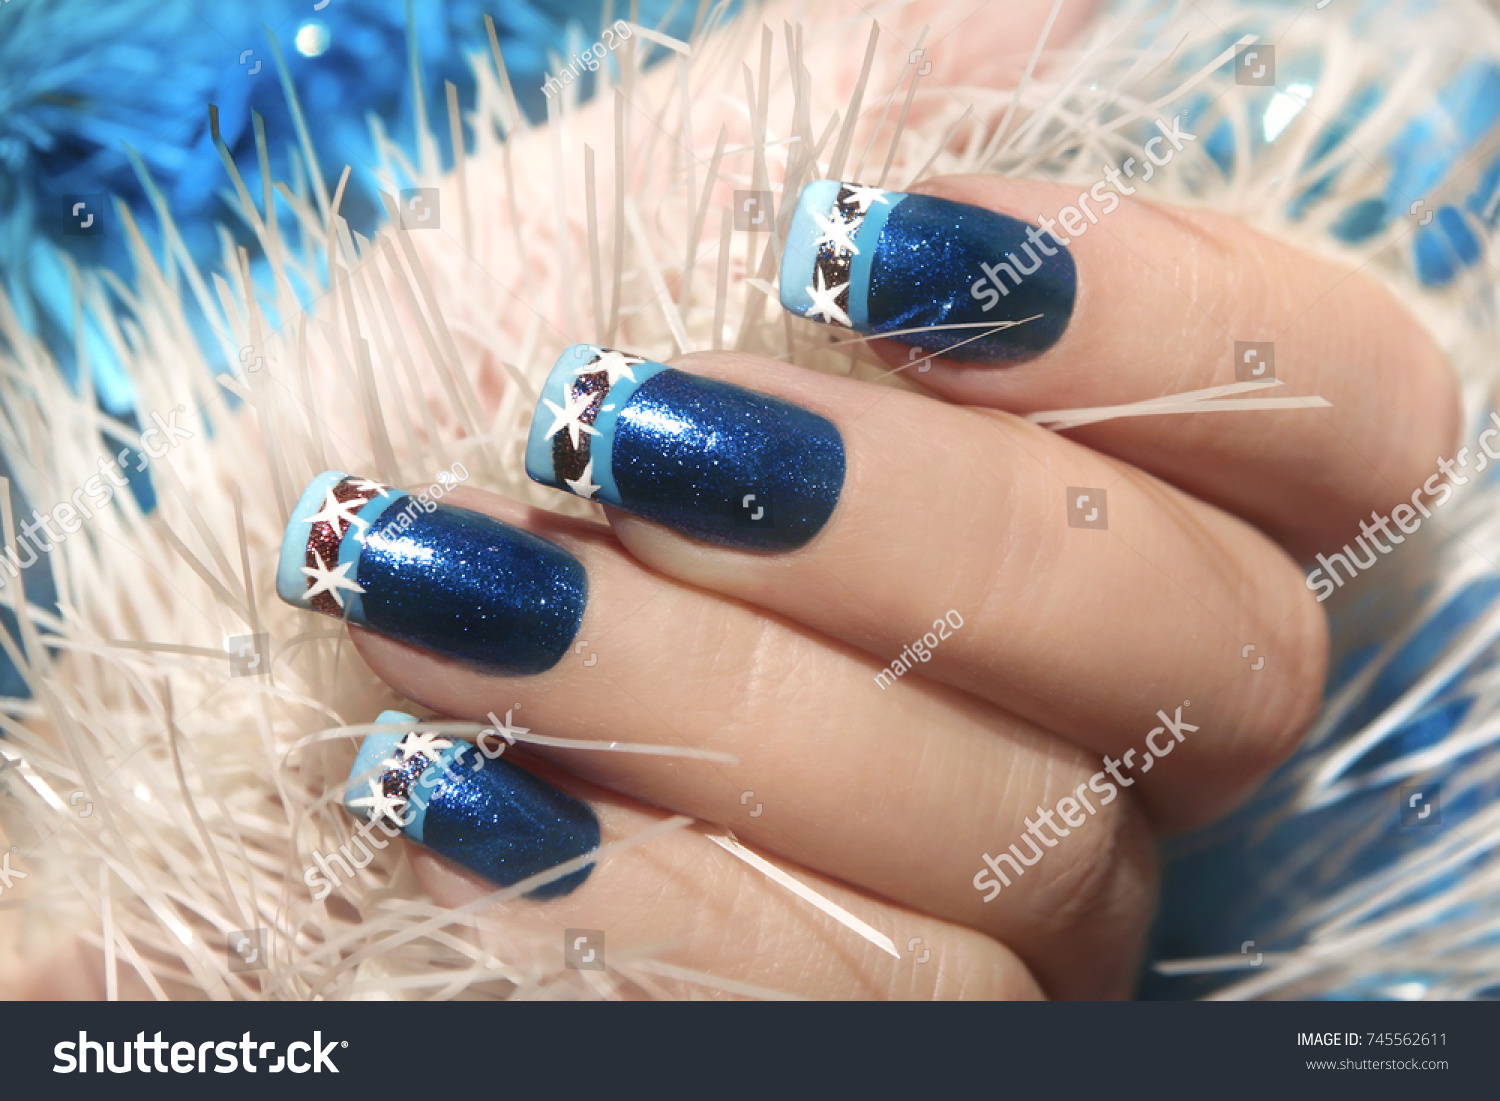 Christmas Winter Blue Design French Manicure Stock Photo (Safe to ...